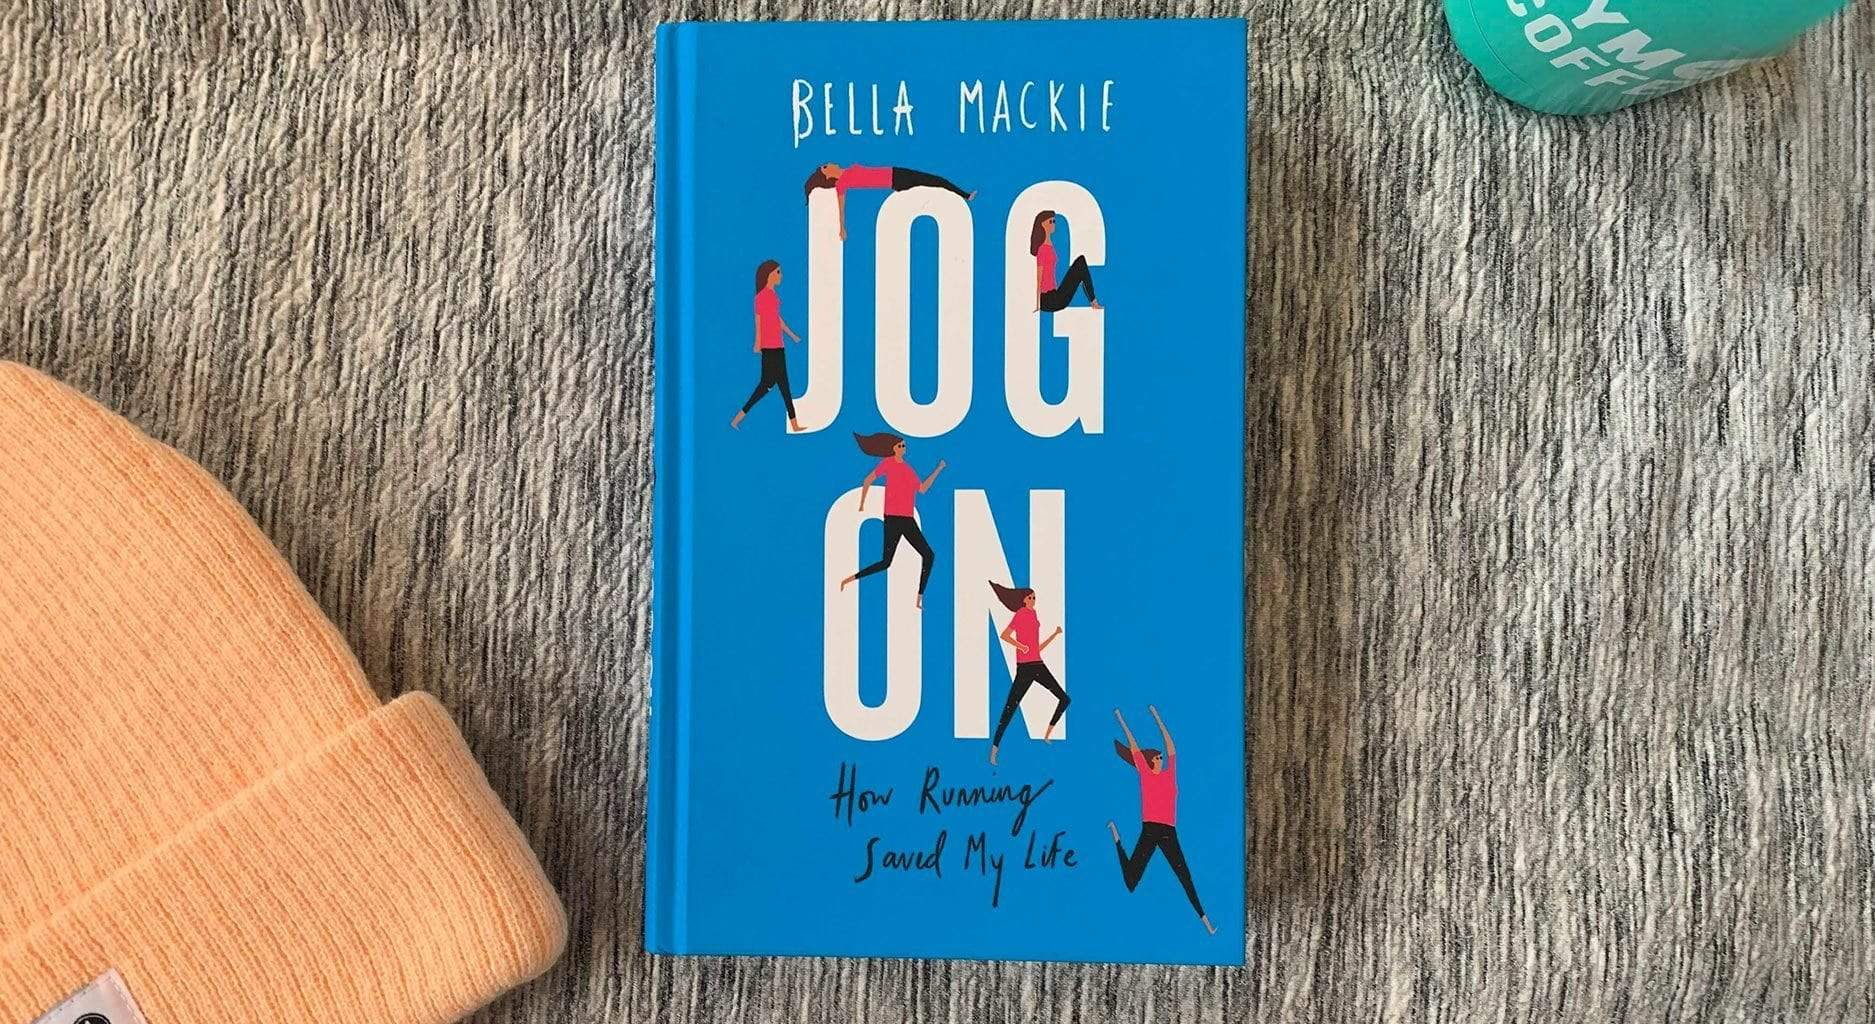 Bella-Mackie-Jog-On-How-Running-Saved-My-Life-Book-Review-Recommendation_2000x